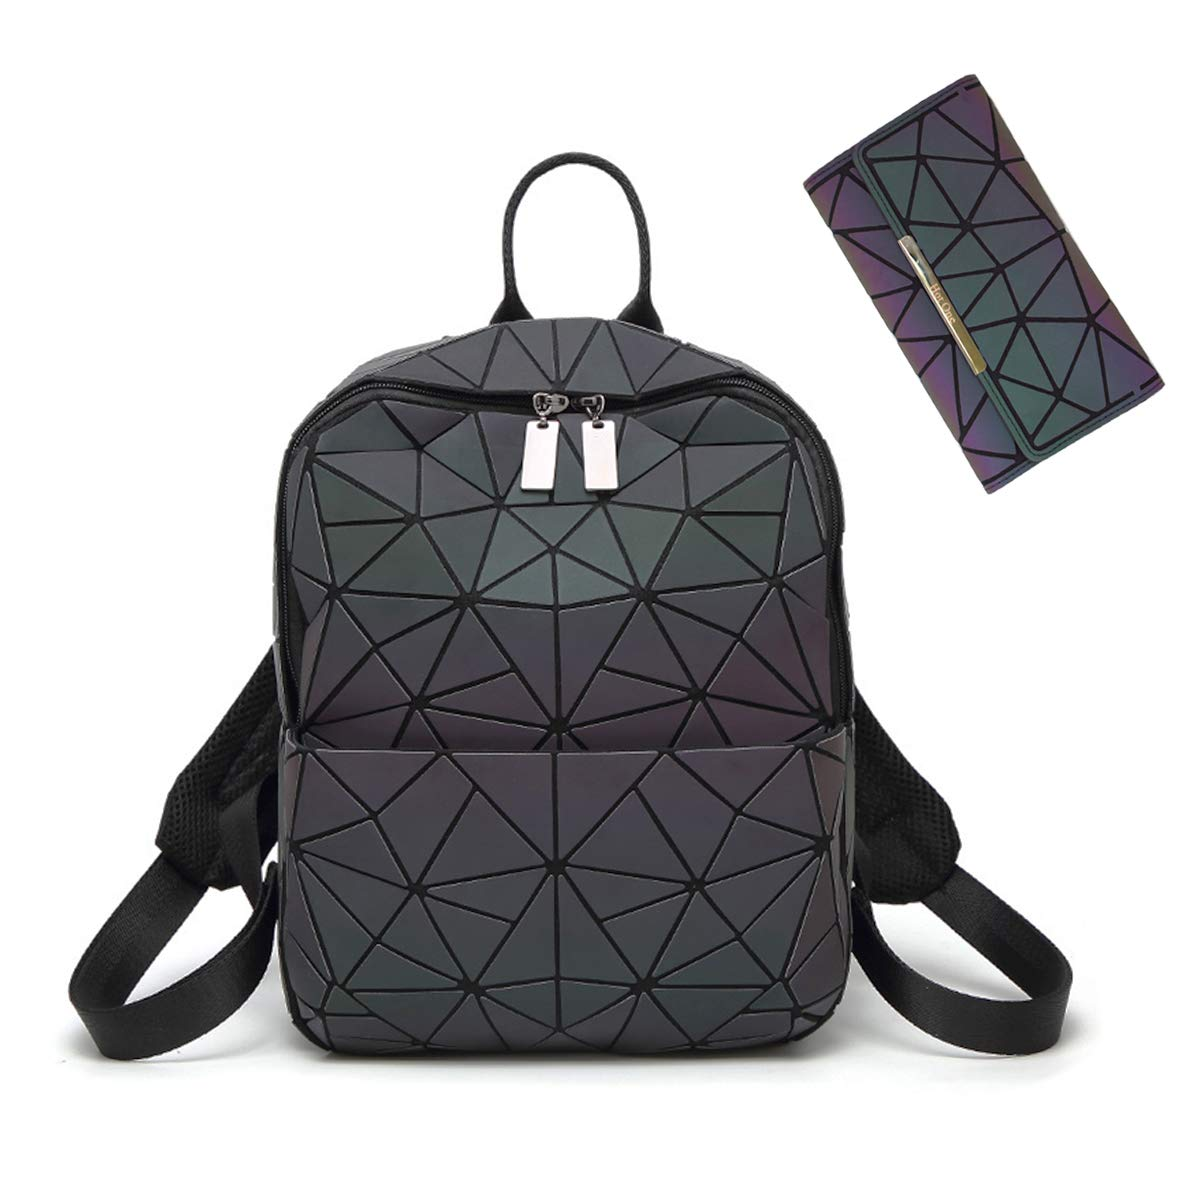 HotOne Geometric Backpack Holographic Reflective Backpacks Fashion Laptop Backpack (No.2 Large Size+Wallet)